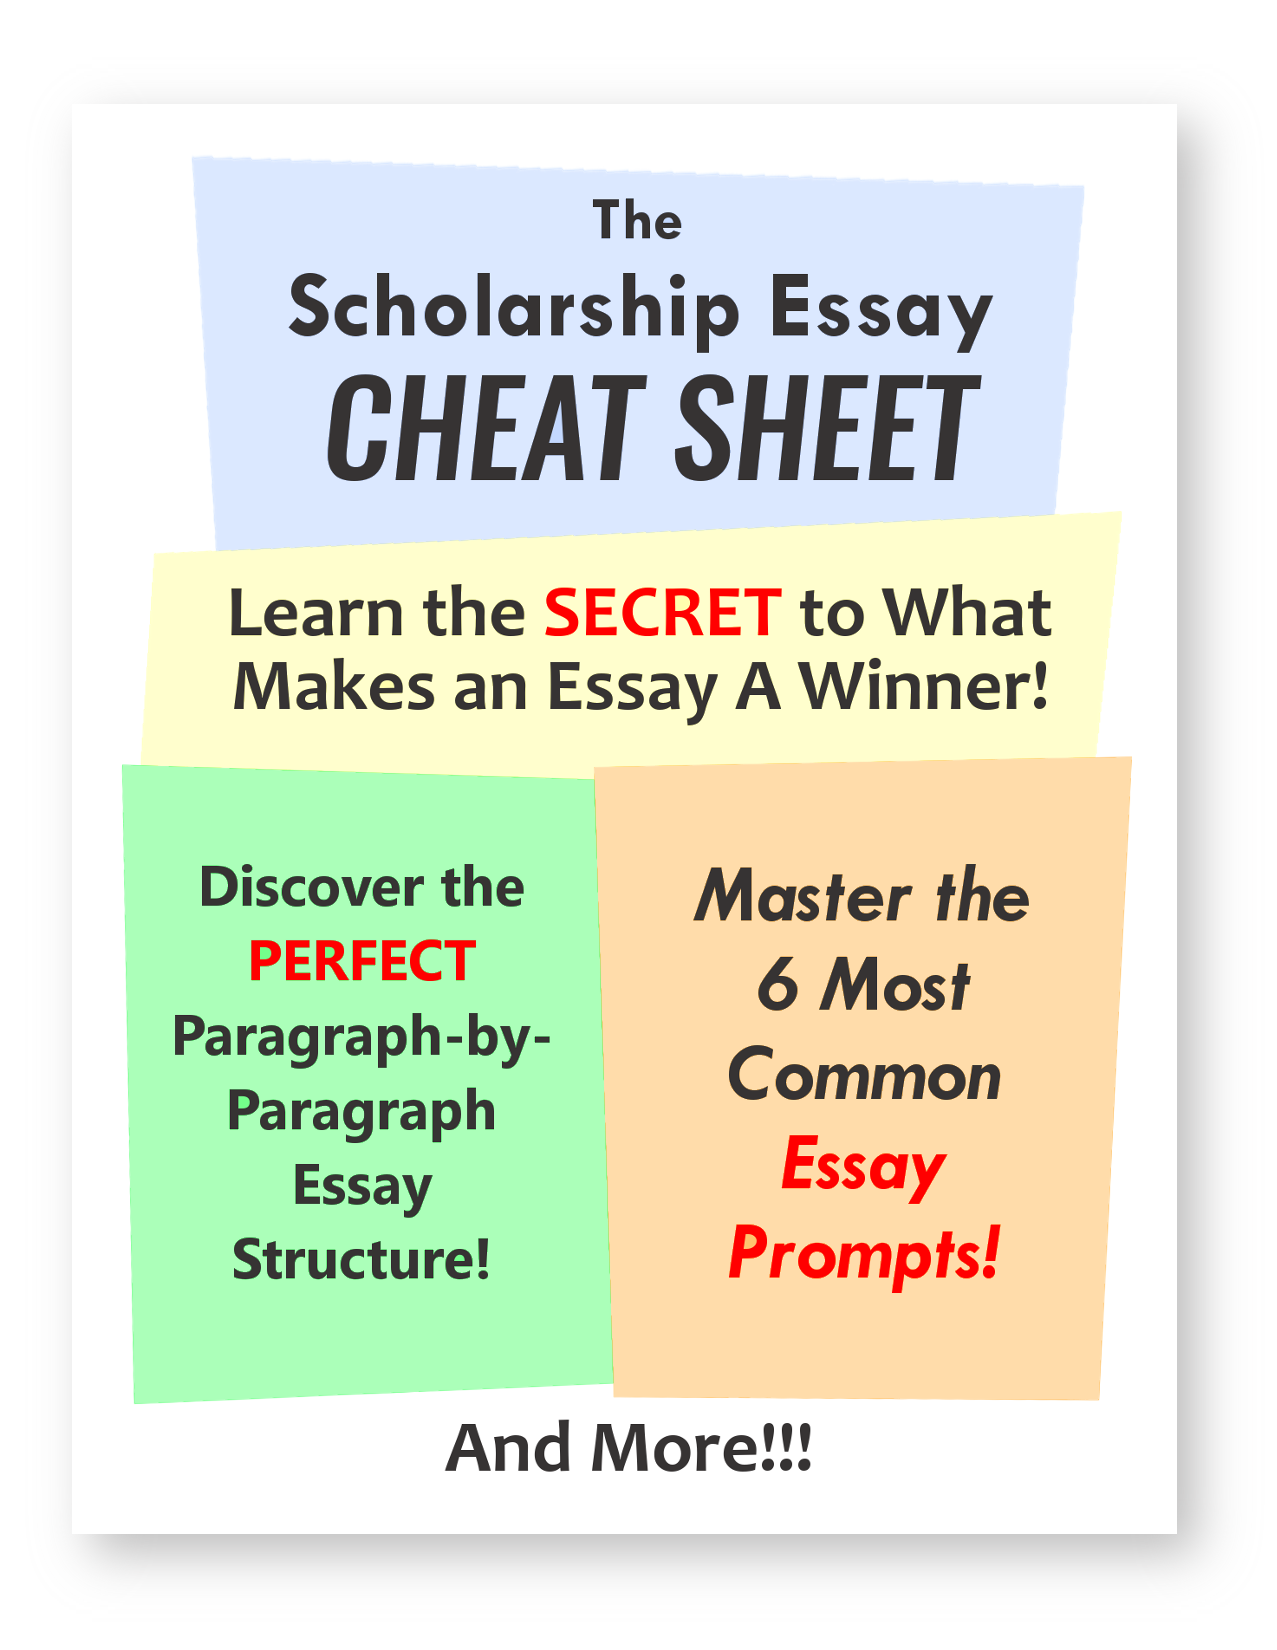 Apa Format Essay Example Paper The Scholarship Essay Cheat Sheet Breaks Down The  Most Common Essay  Prompts The Perfect Essay Structure And The Key To A Winning Essay Plus  Its Free Thesis Statement For A Persuasive Essay also Essay Writing On Newspaper The Scholarship Essay Cheat Sheet Breaks Down The  Most Common  Purpose Of Thesis Statement In An Essay